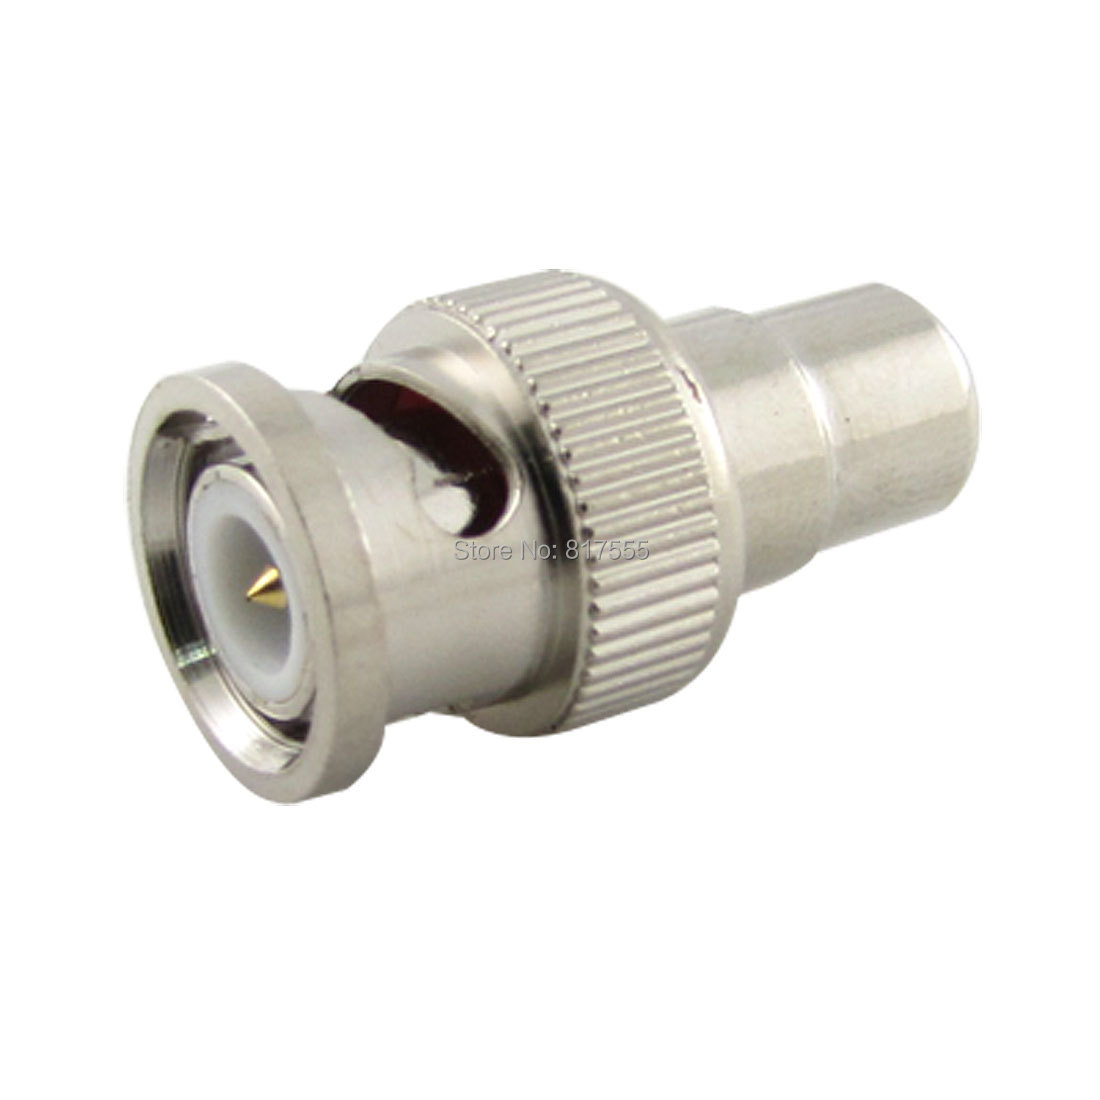 Coaxial Cable Adapter : Coax cable to rca converter bing images